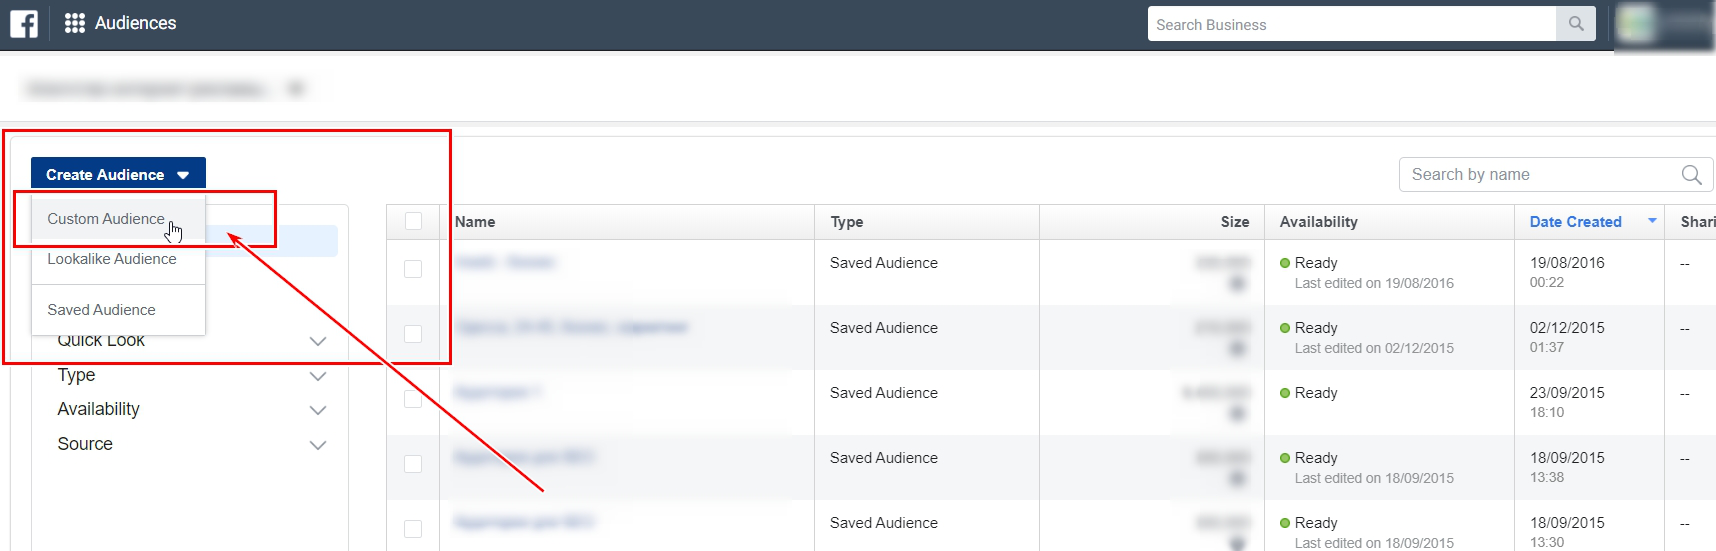 Creating audience in Facebook Ads Manager